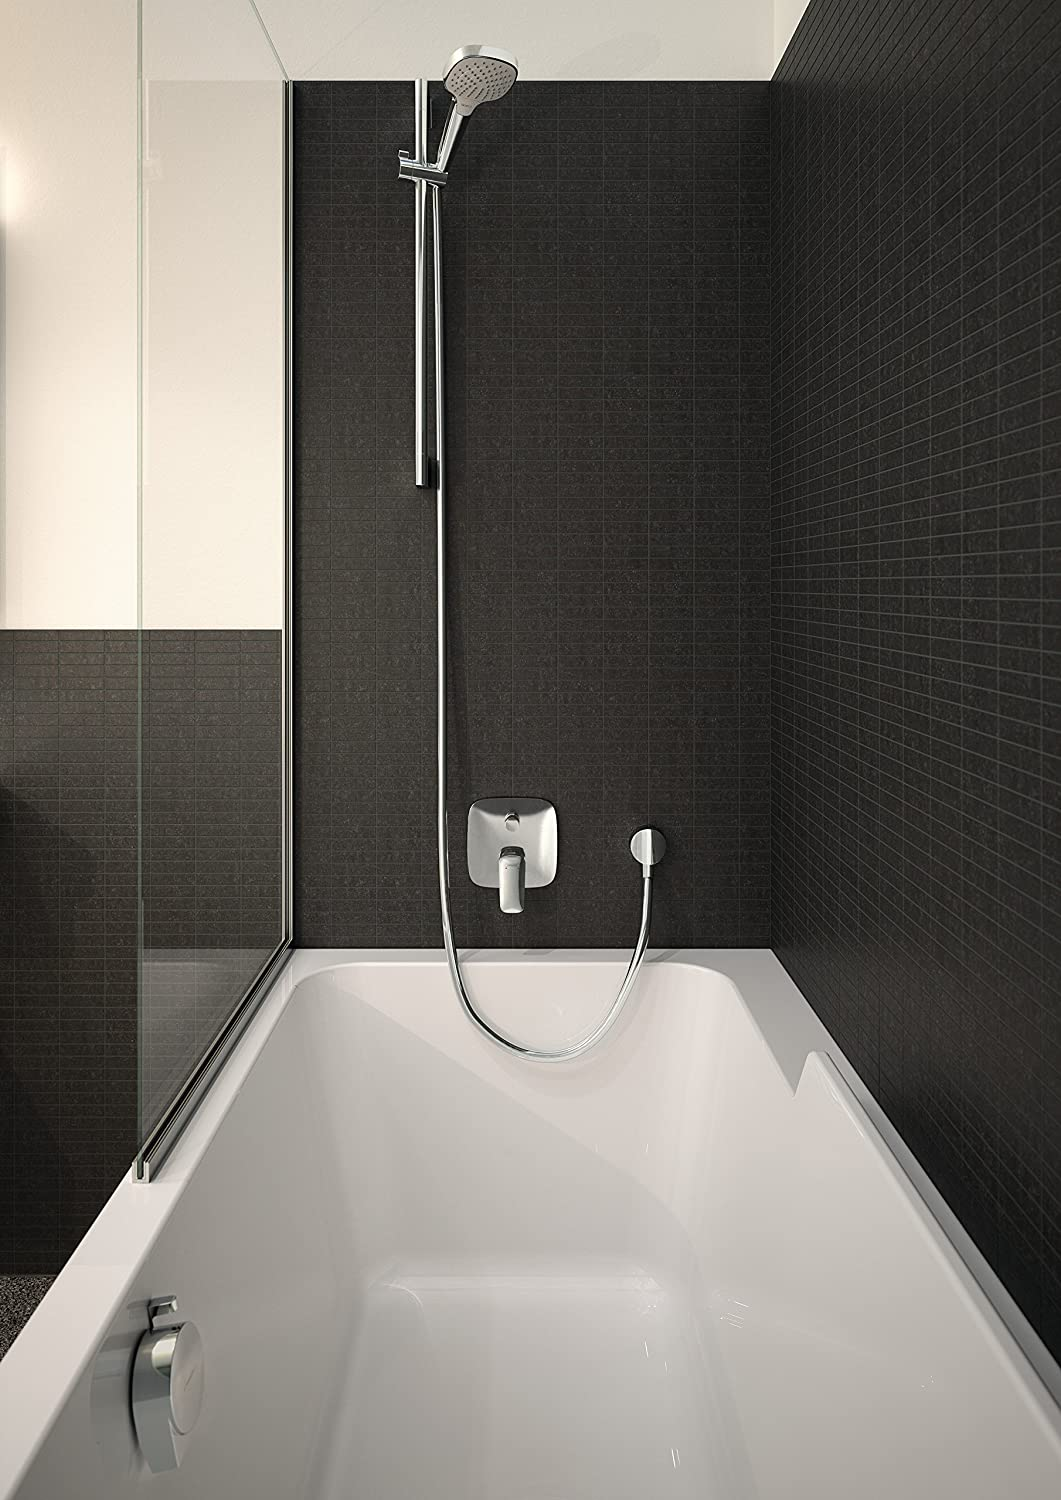 hansgrohe bathtub shower. hansgrohe logis bath and shower mixer for 2 outlets, chrome 71405000: amazon.co.uk: diy \u0026 tools bathtub 1